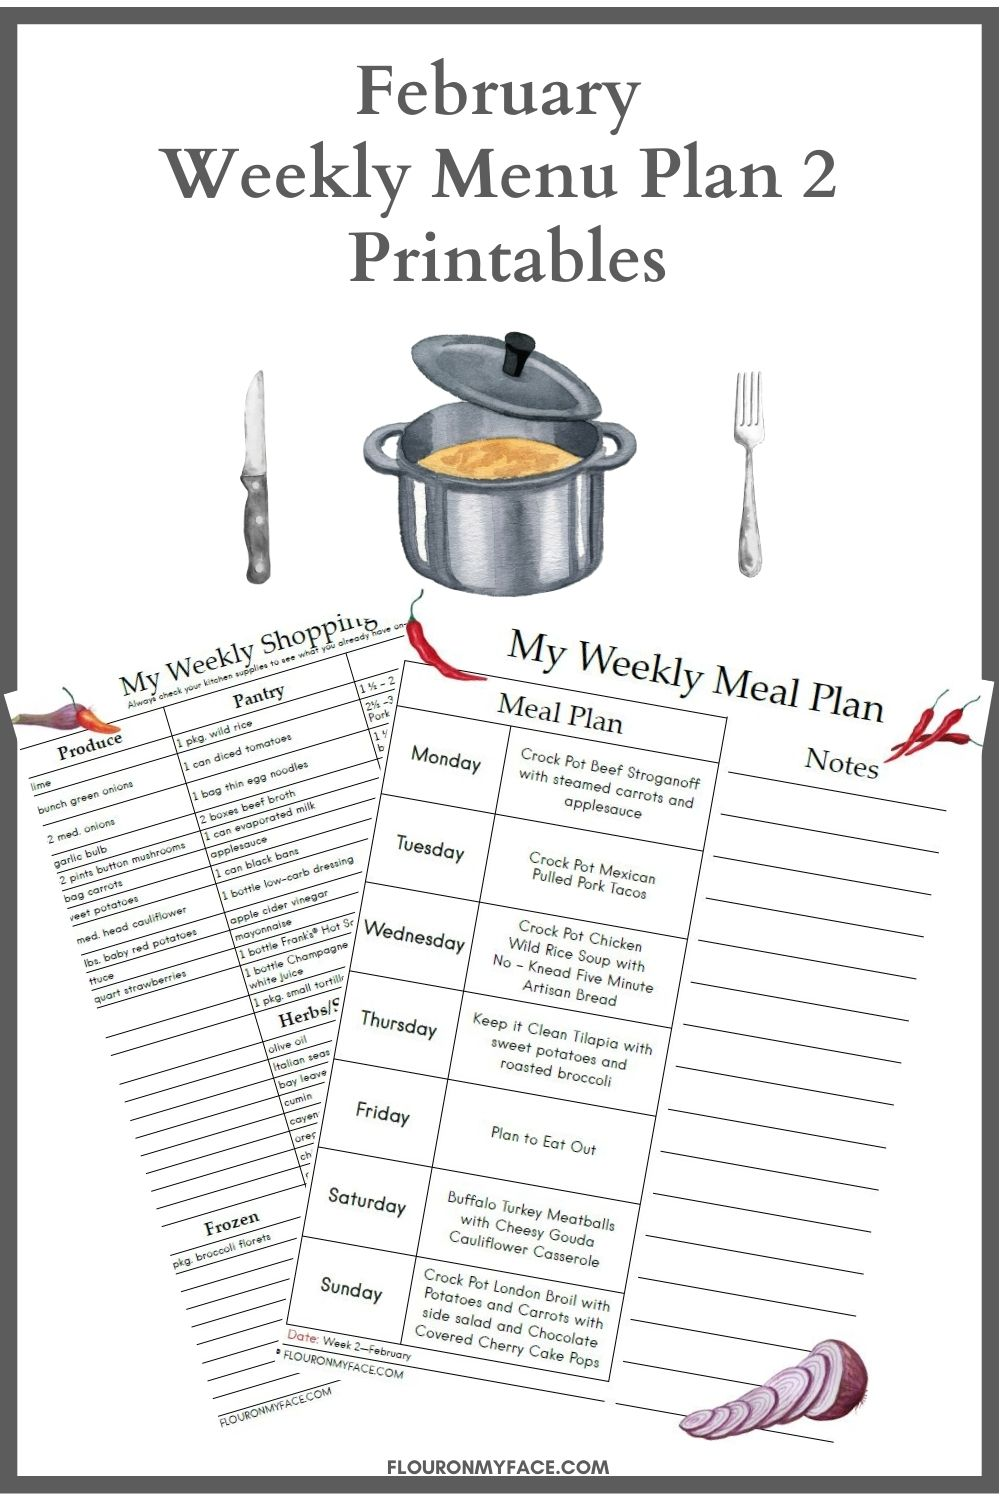 February Menu Plan 2 printable preview.